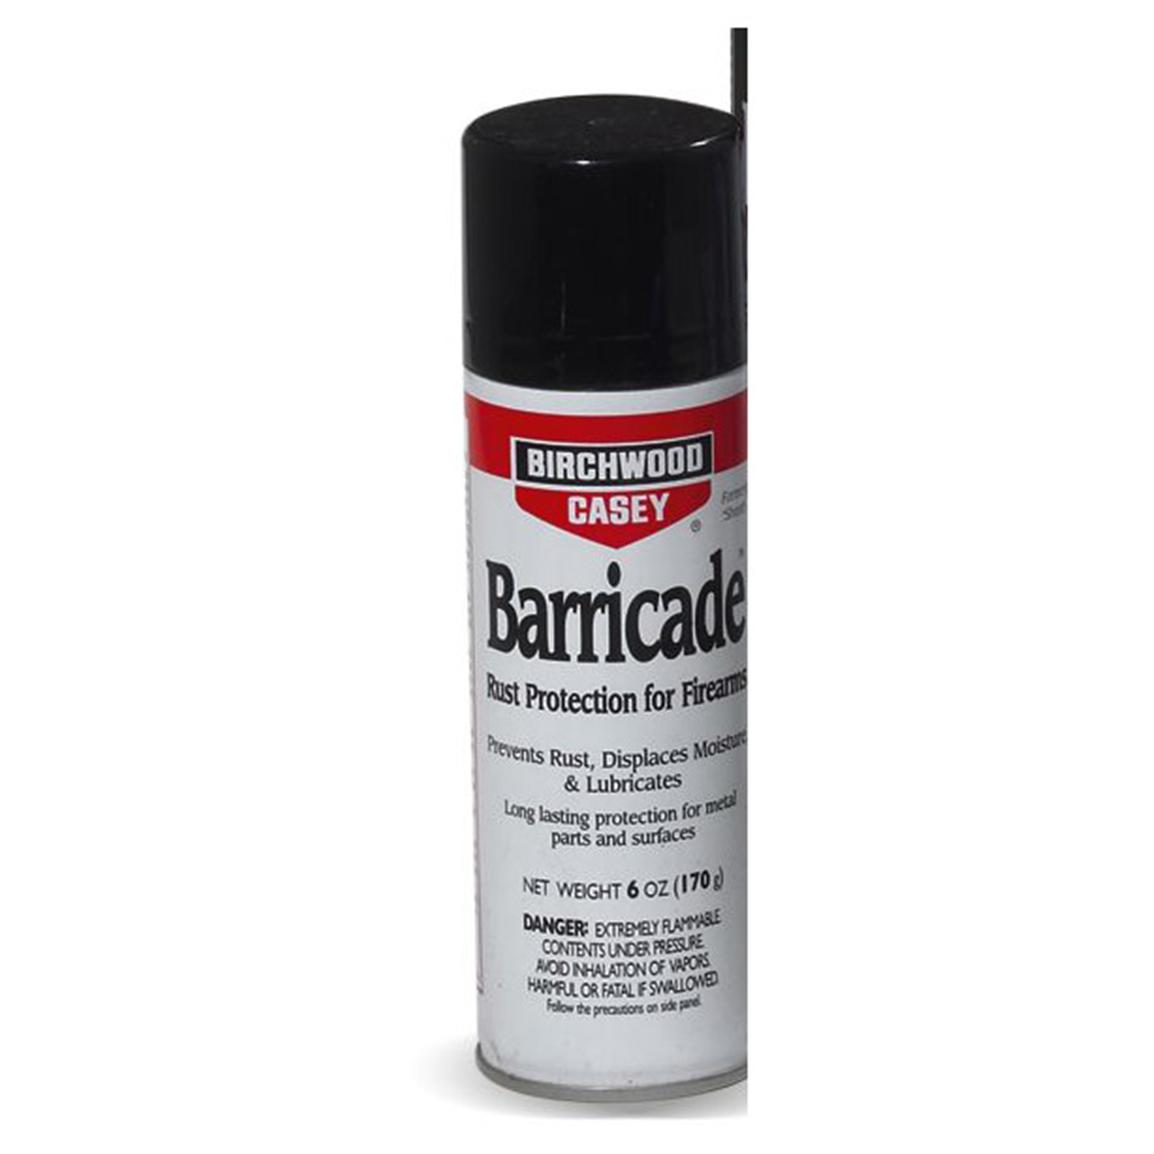 Birchwood Casey Barricade Rust Protection for Firearms, Aerosol